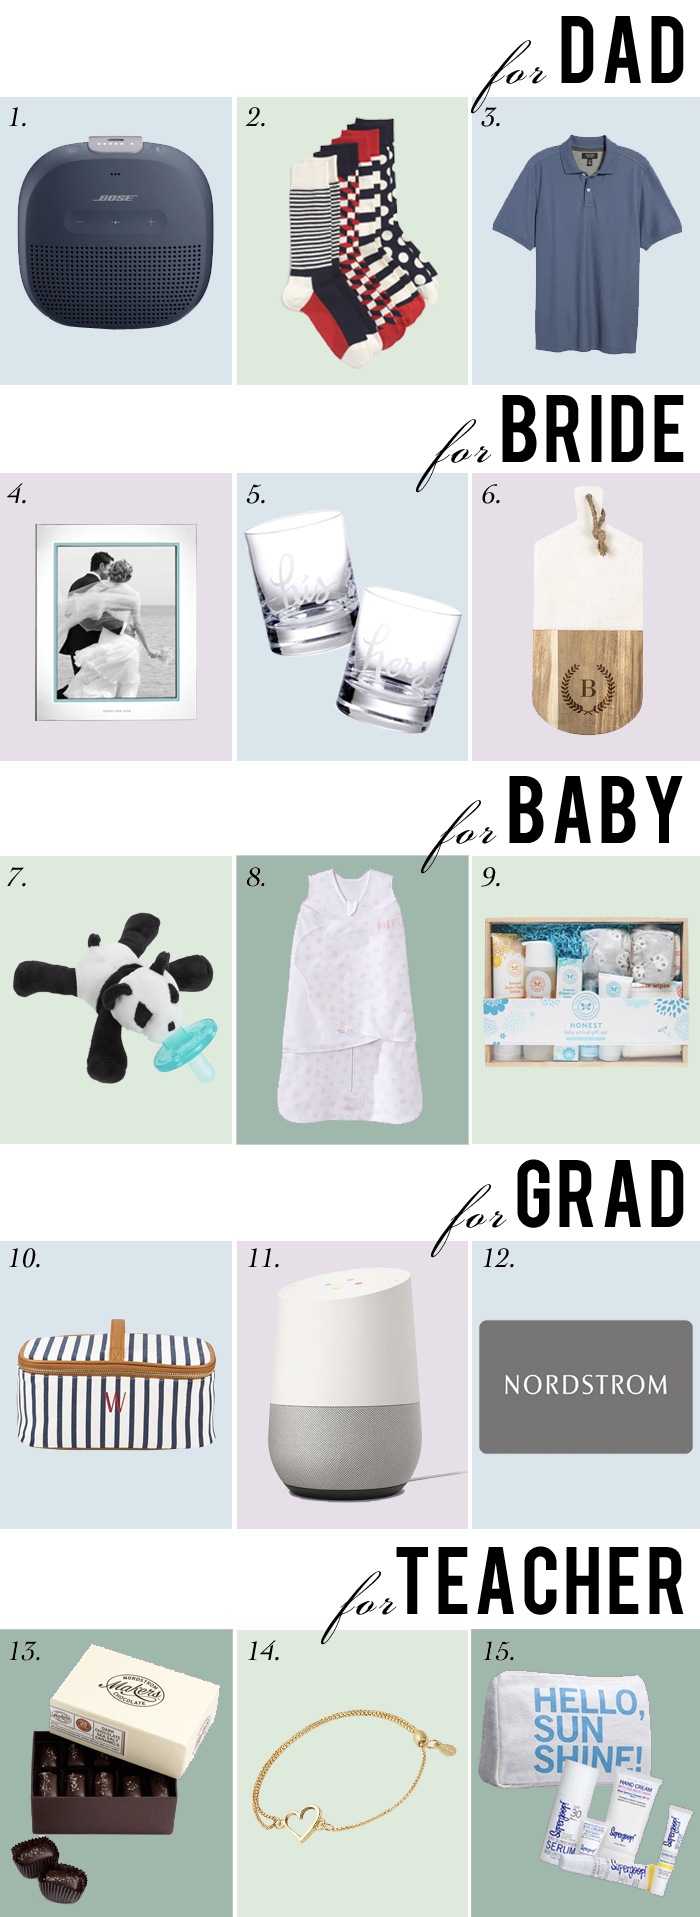 gift guide grads dad baby showers